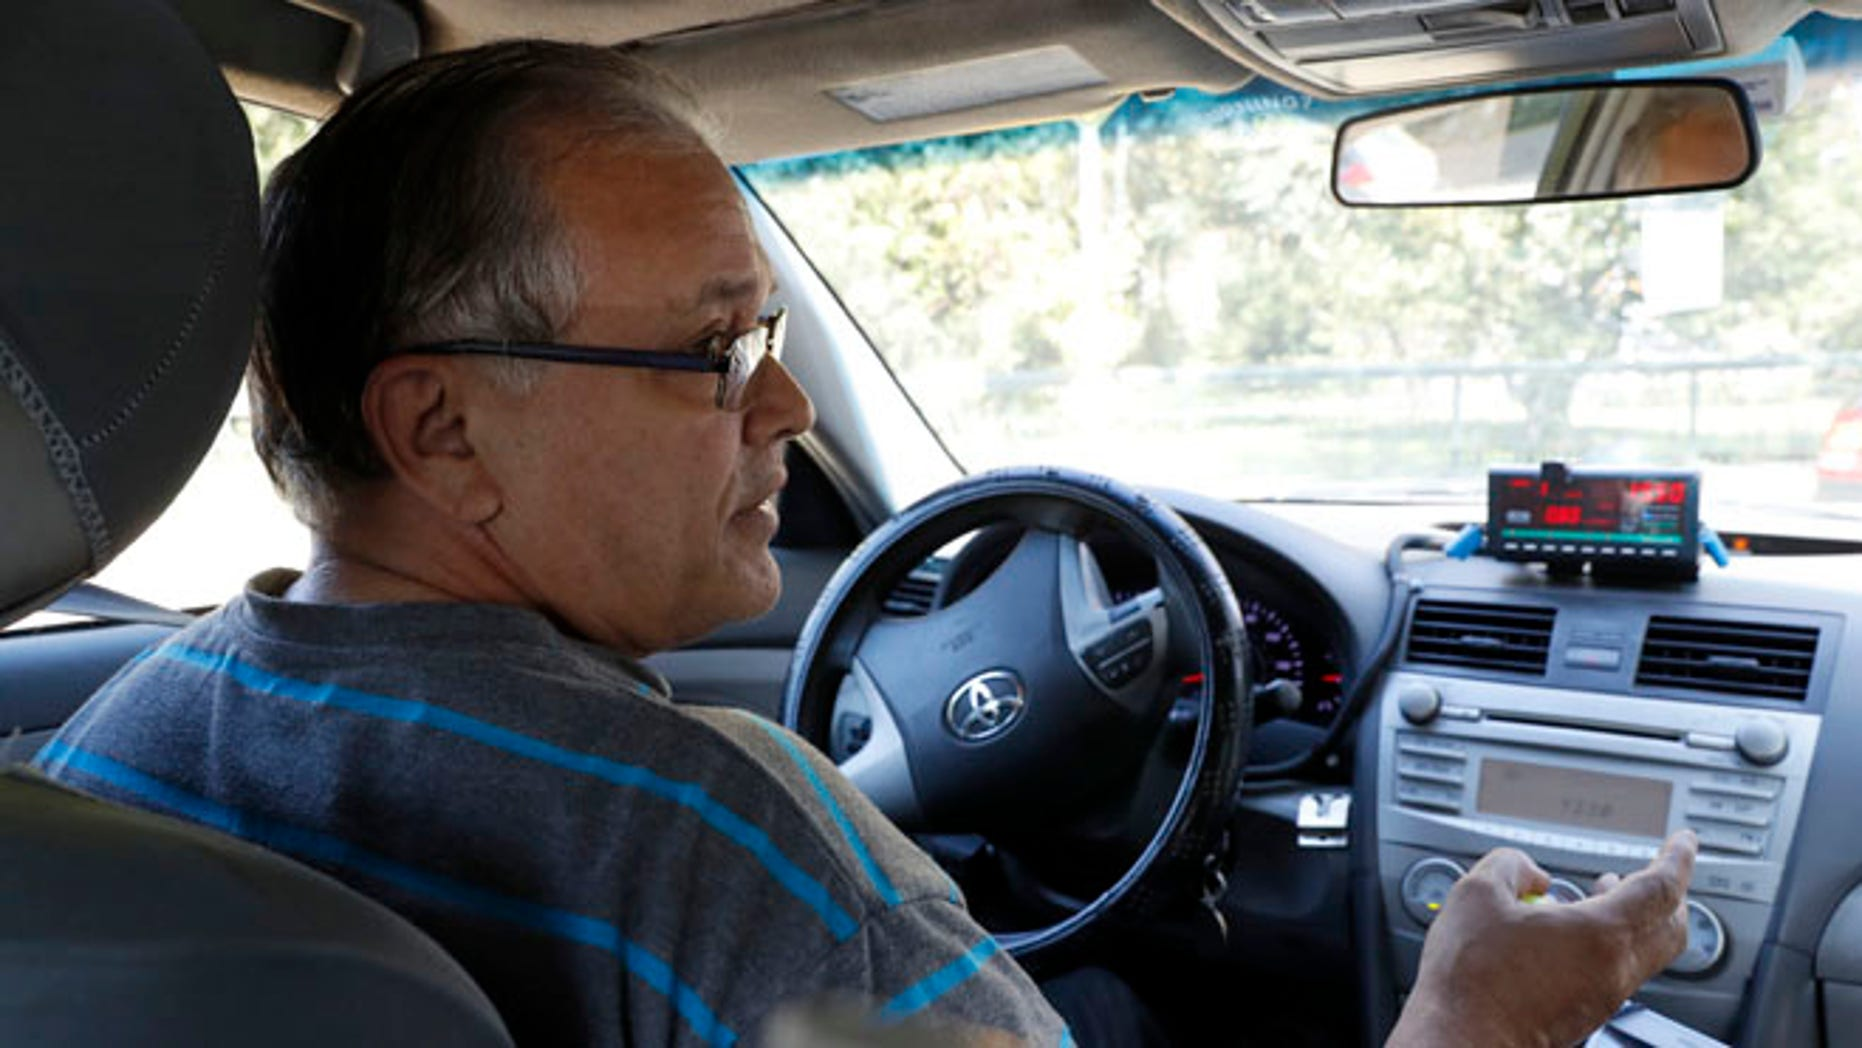 In this Wednesday, Aug. 24, 2016 photo, taxi driver Luis Rosado speaks to an Associated Press reporter while stopped at a red light in New York. Nearly 96 percent of cabbies are immigrants, and the city has dropped a longstanding requirement that they be required to speak and understand basic English. While immigrant advocates say the change makes it easier for newcomers to get work behind the wheel, some customers say it could make riding in a cab even more of an adventure. (AP Photo/Mary Altaffer)